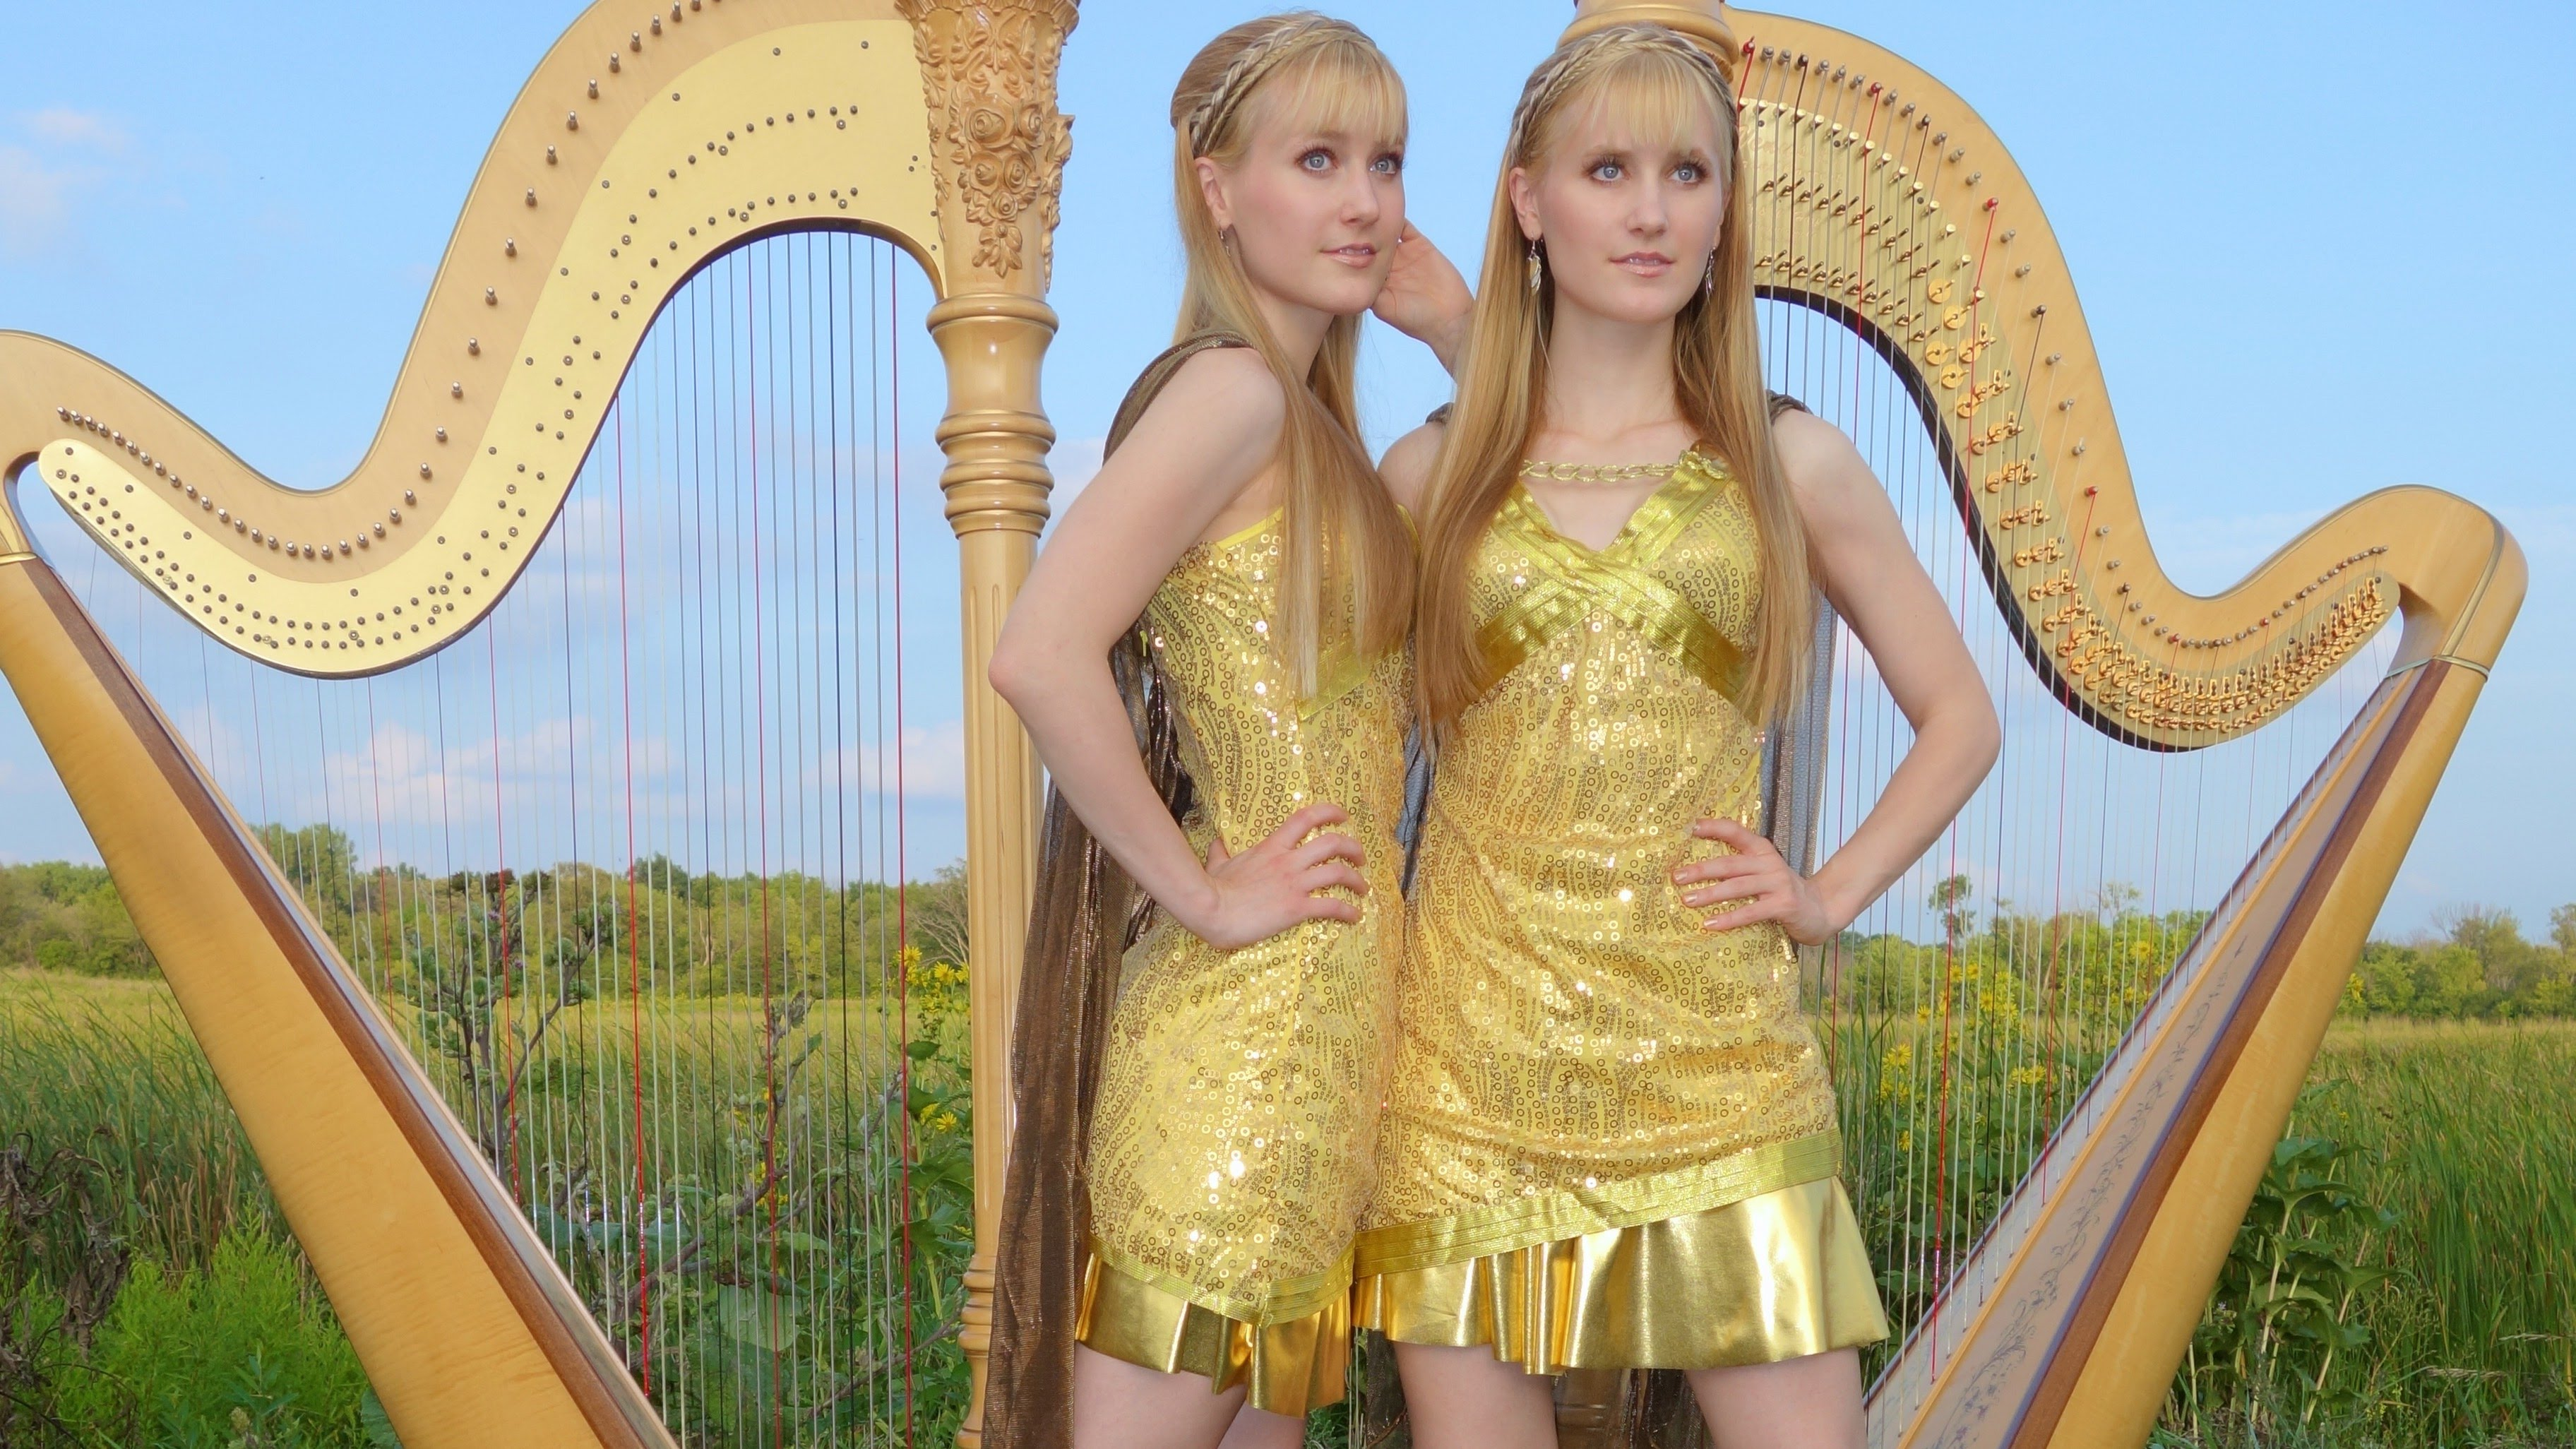 The Harp Twins Perform A Cover Of The Now We Are Free Theme Song